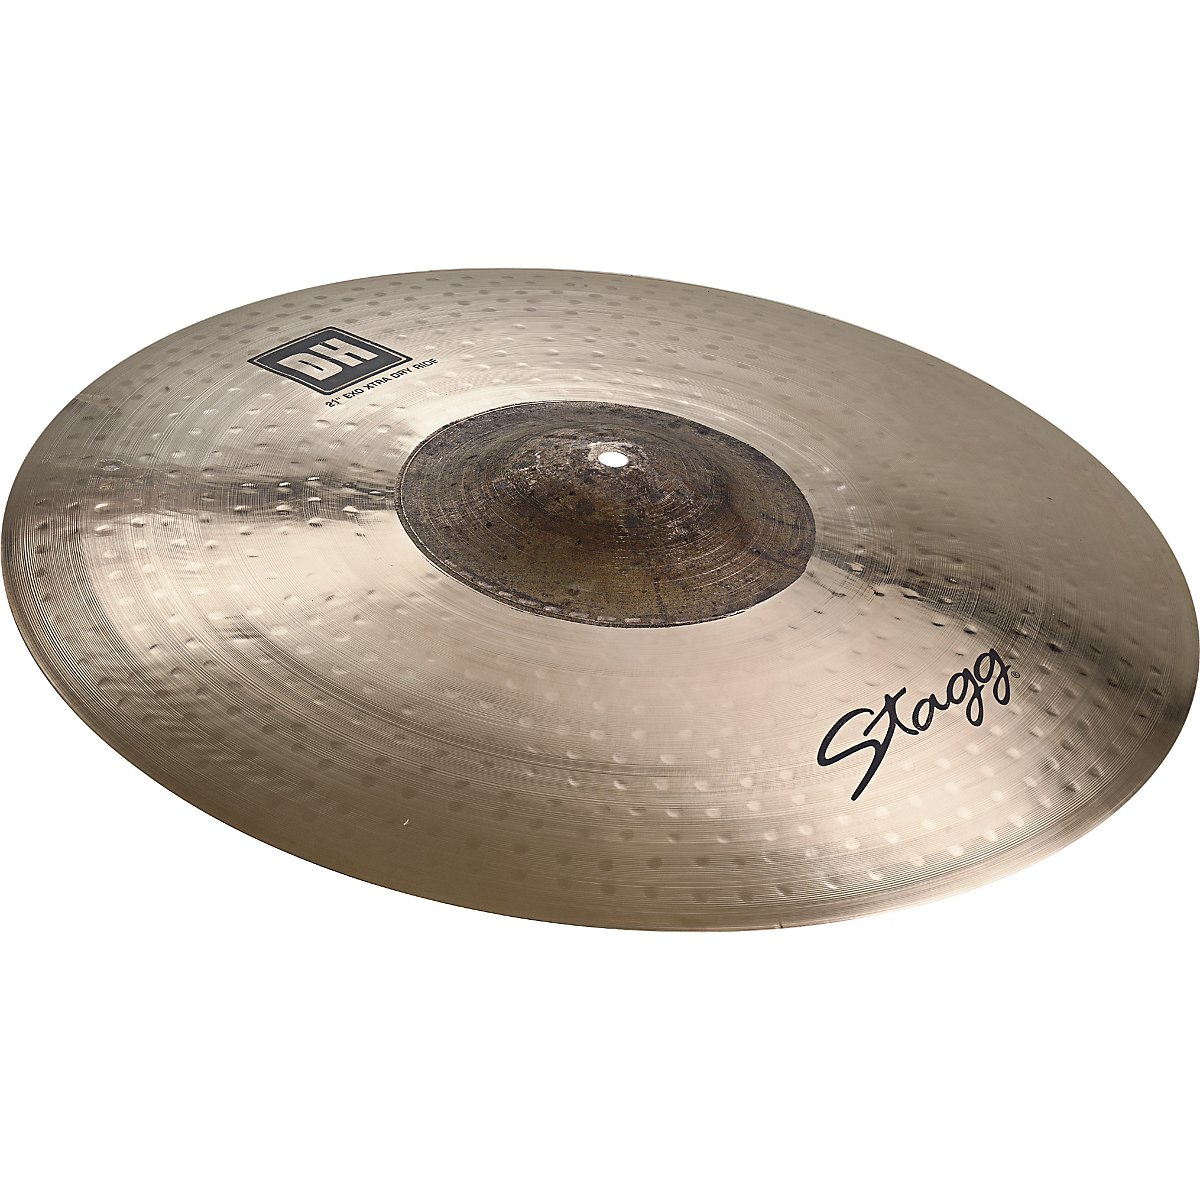 Stagg DH-RXD21E 21-Inch DH Exo Extra Dry Ride Cymbal